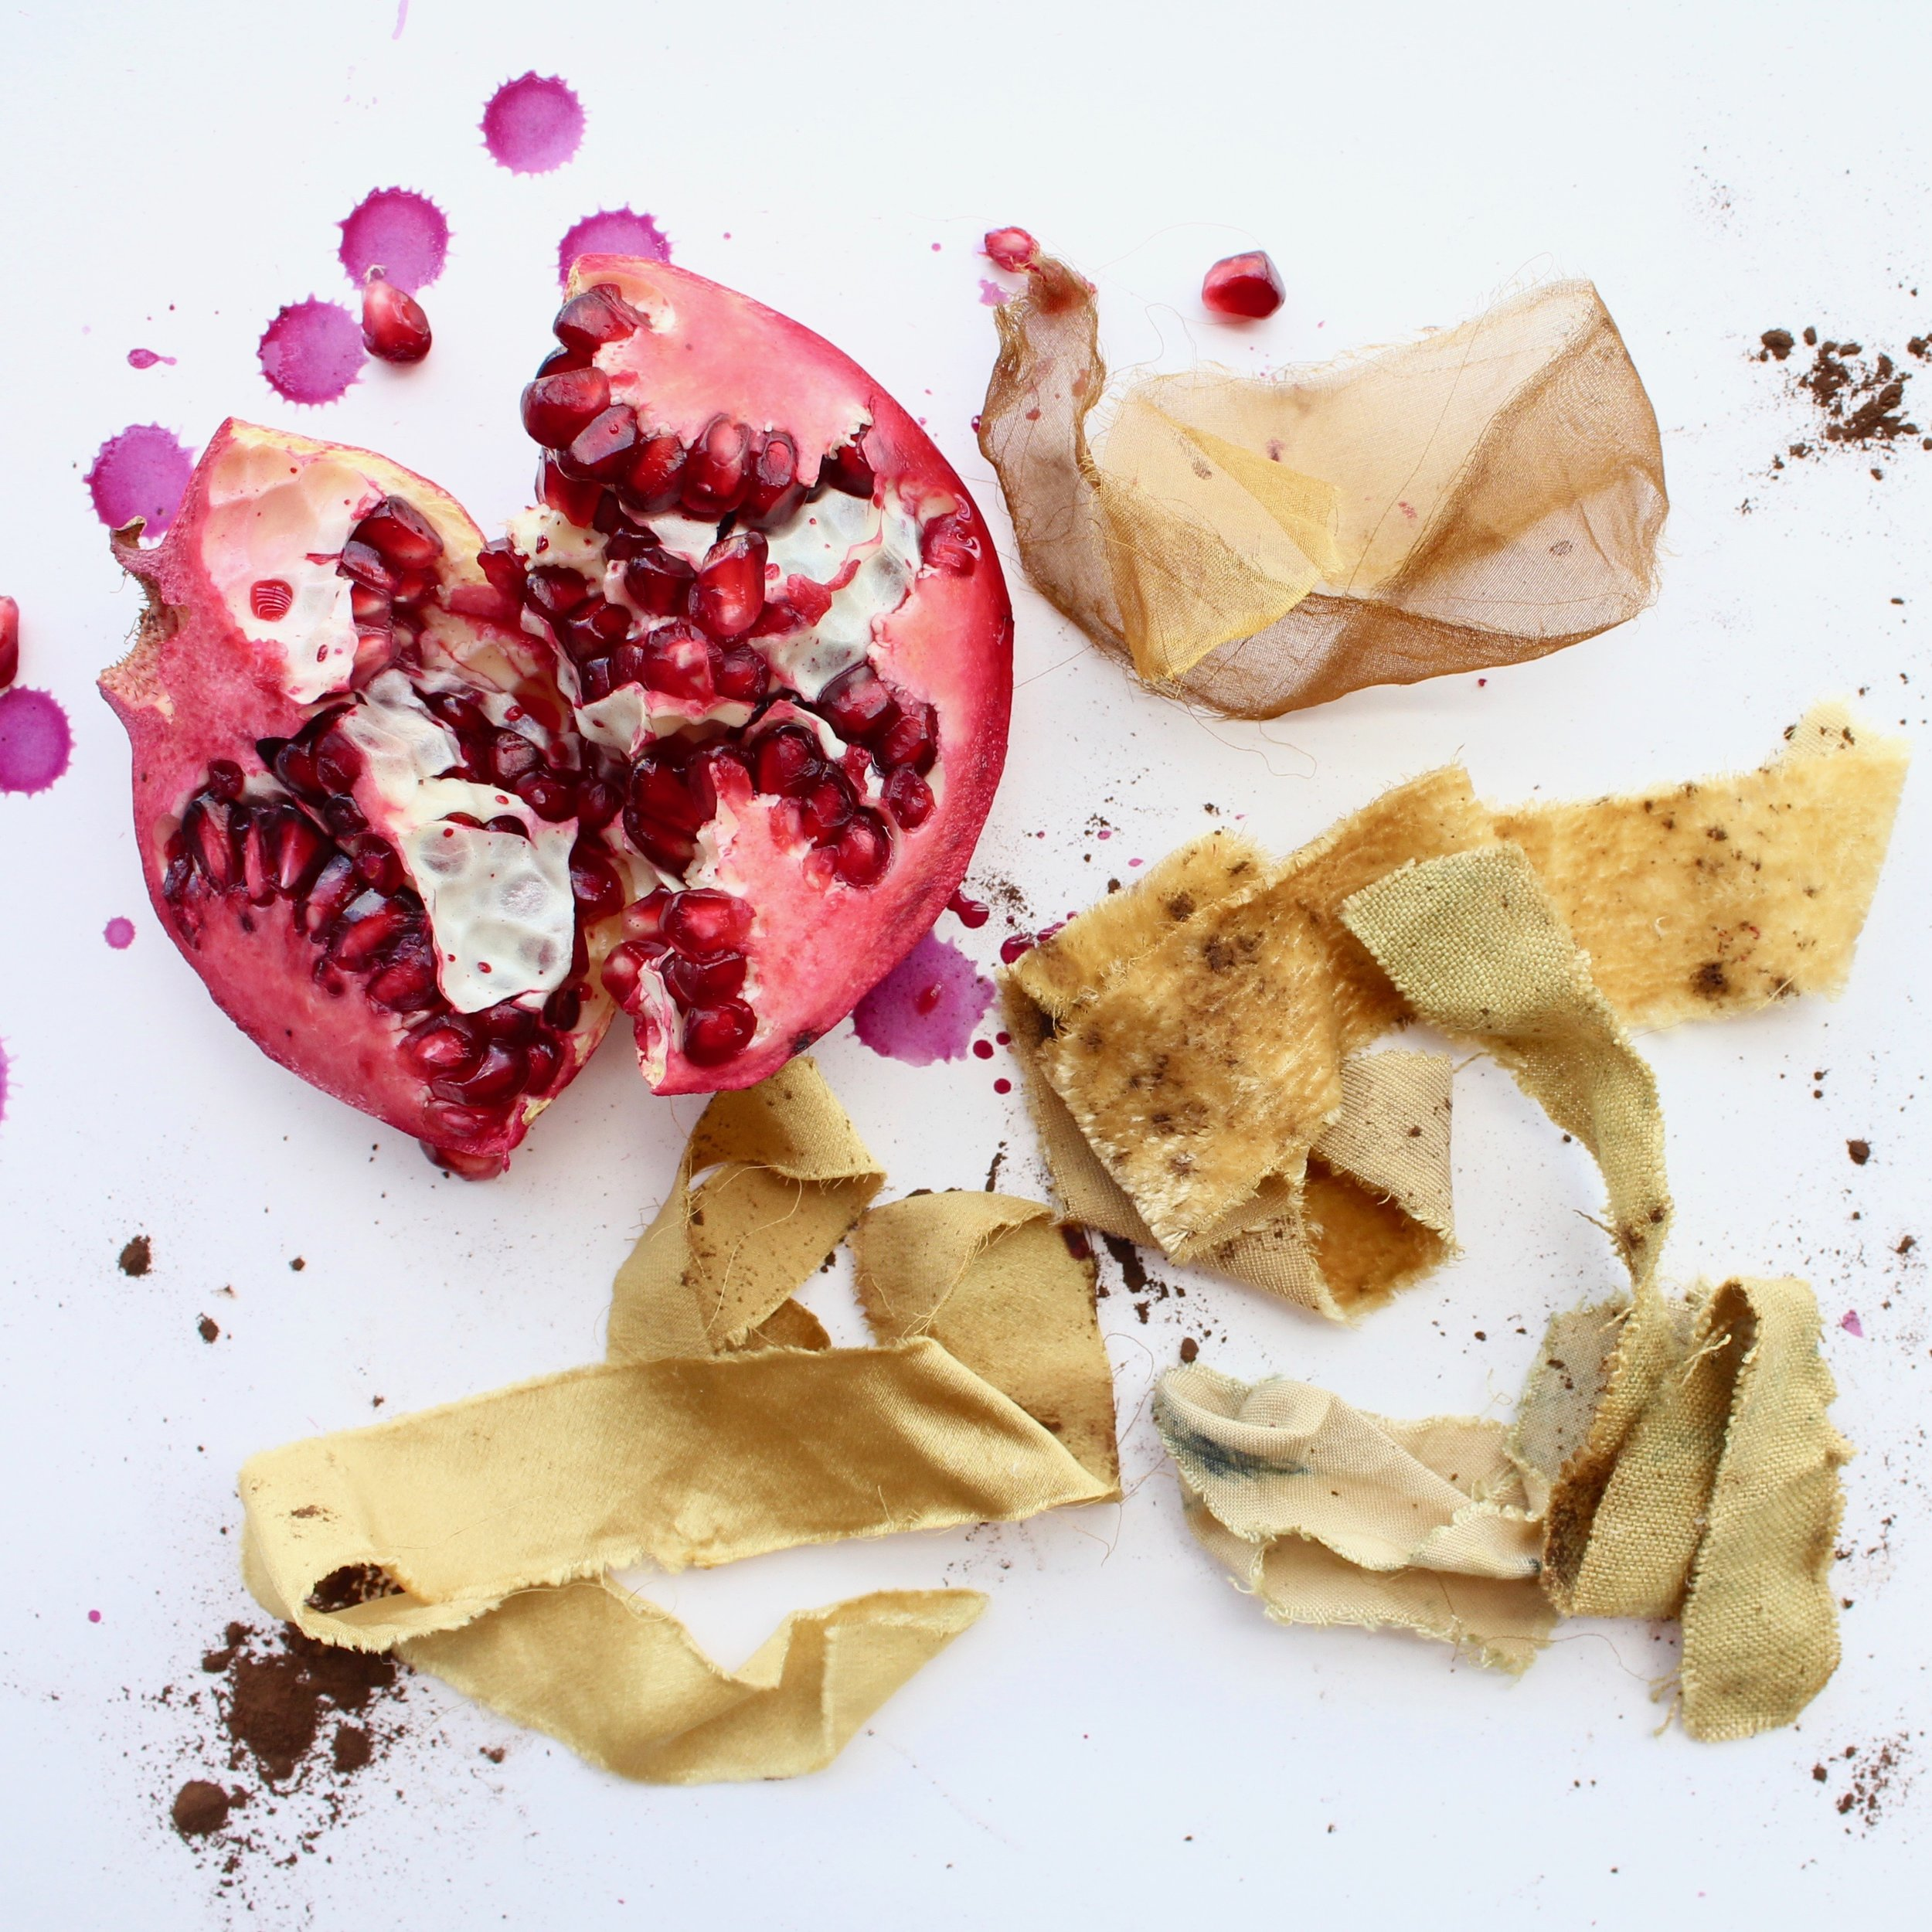 Pomegranate  Pomegranate skins will yield gold tones to earthy army greens. It can also be used as a mordant.